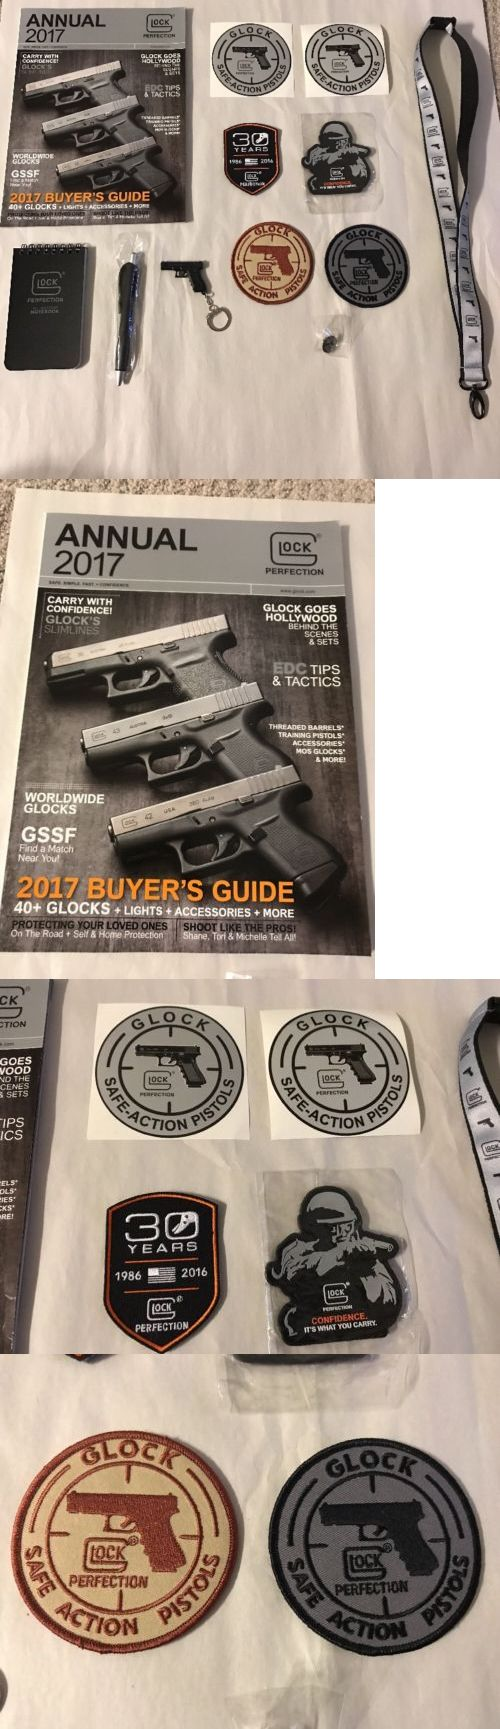 Other Tactical and Duty Gear 177902: Shot Show 2017 Glock Lot Lanyard Gun Keychain Pen Patches Lapel Pin Decals ++ -> BUY IT NOW ONLY: $43 on eBay!